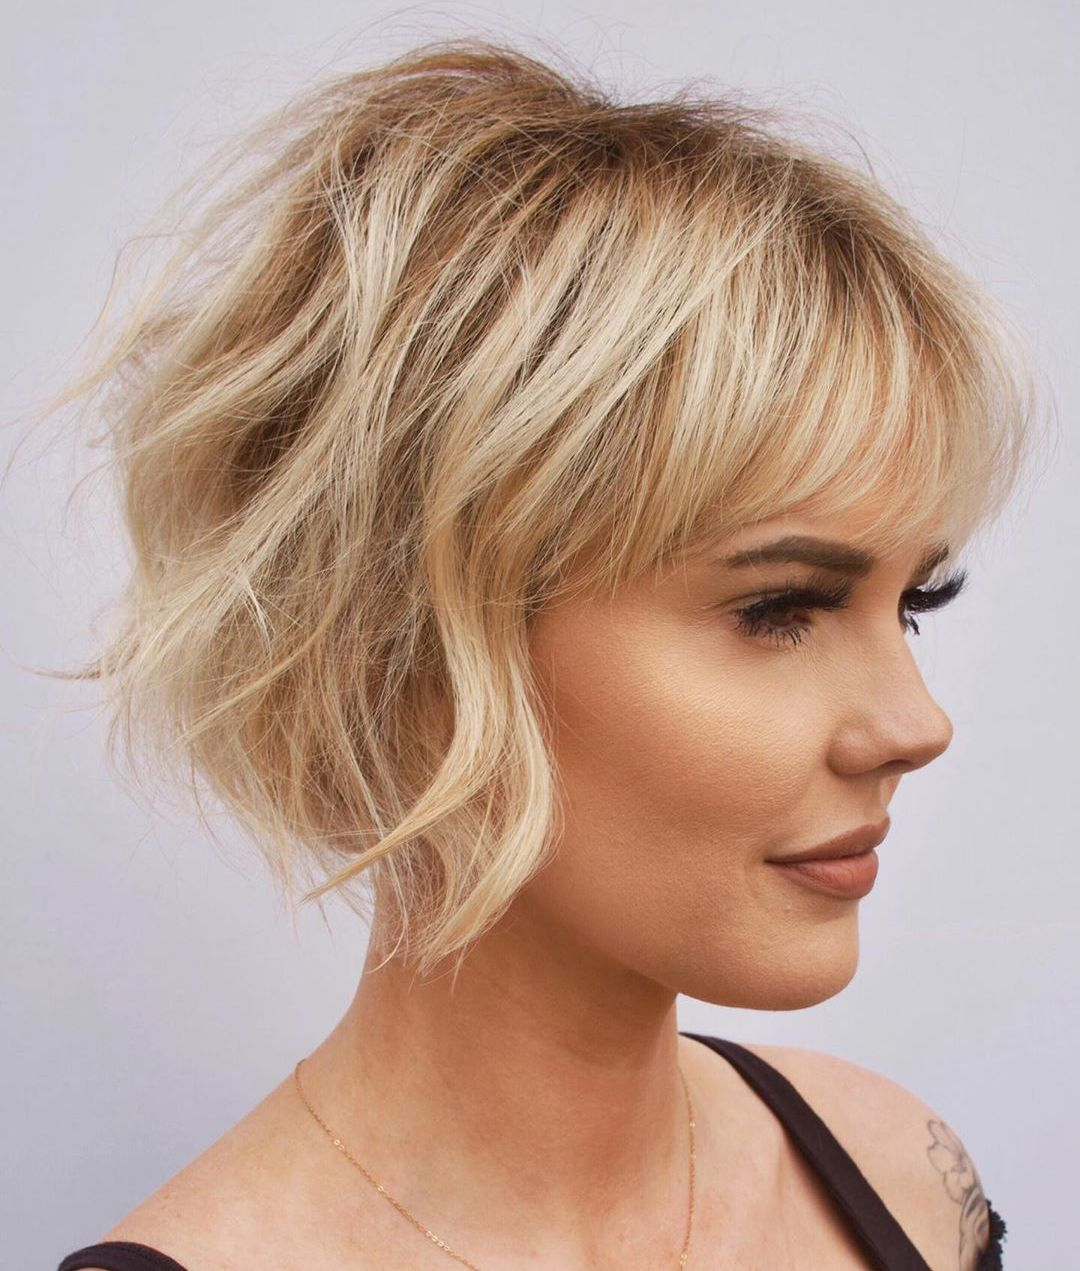 Short Women`s Haircut with Bangs